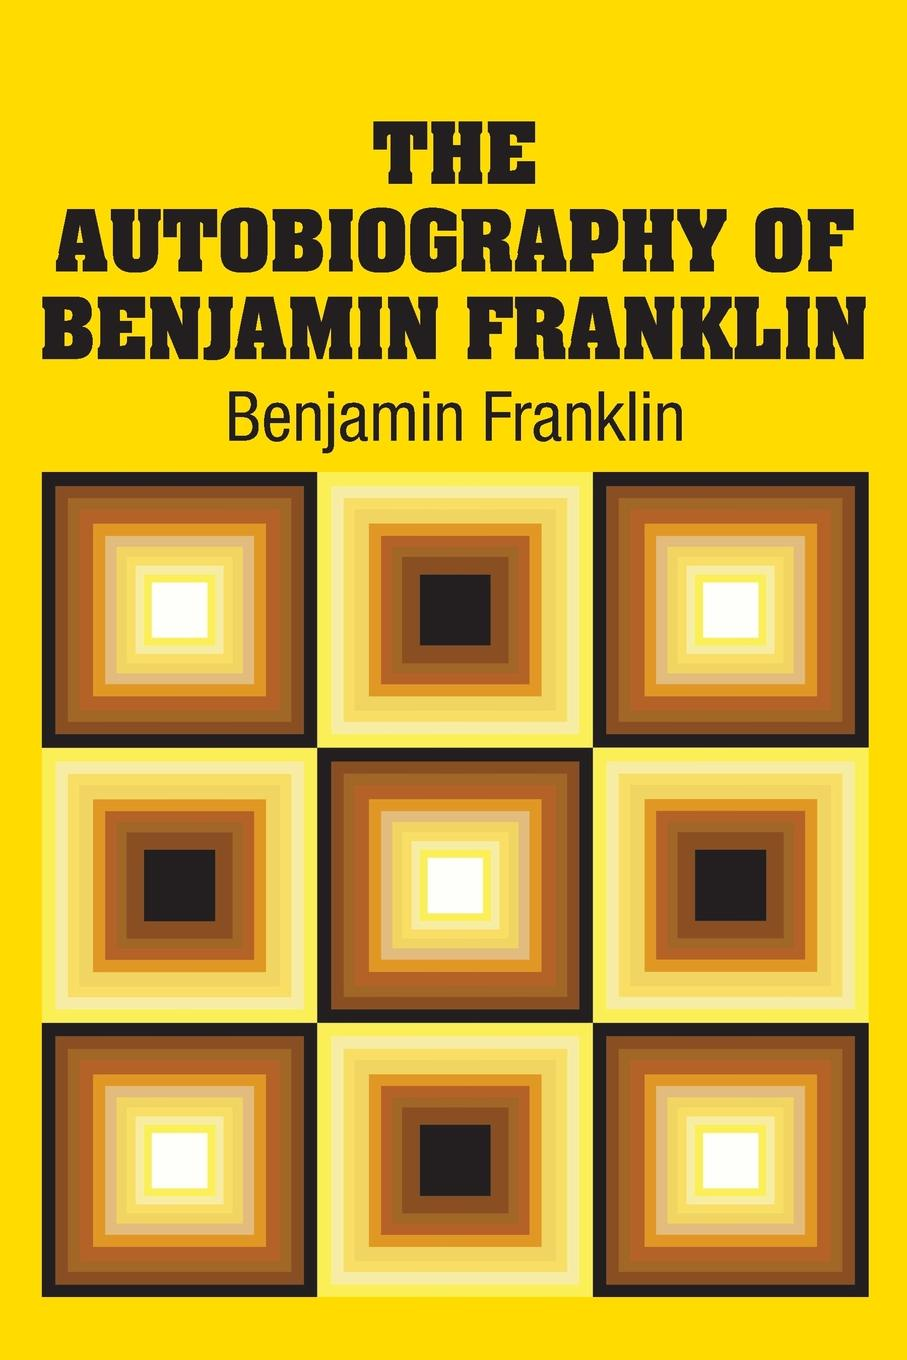 Benjamin Franklin The Autobiography of